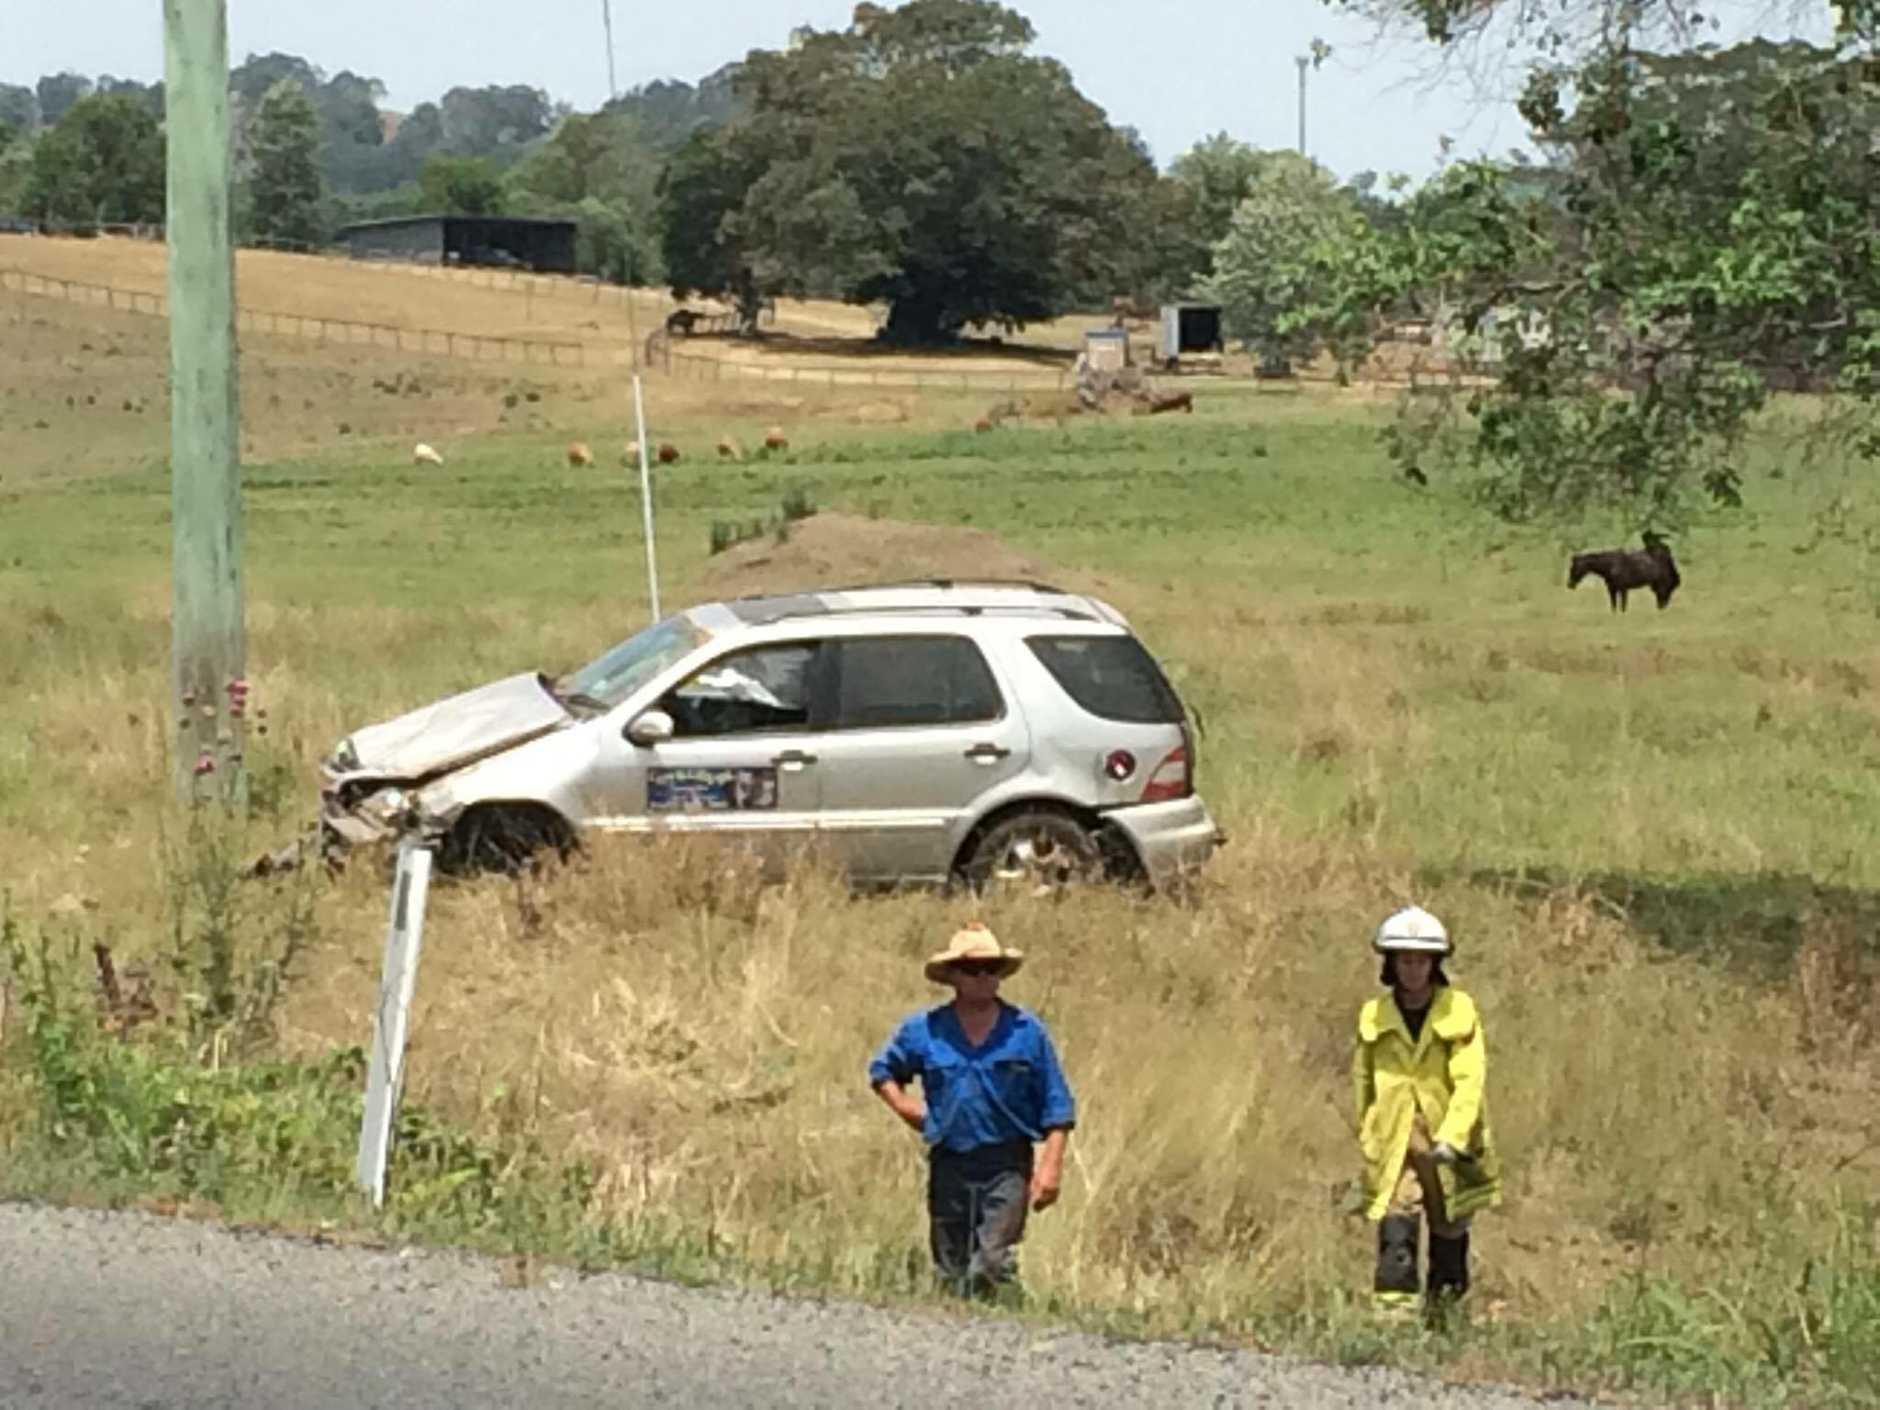 Police say the car rolled multiple times after it left the road.